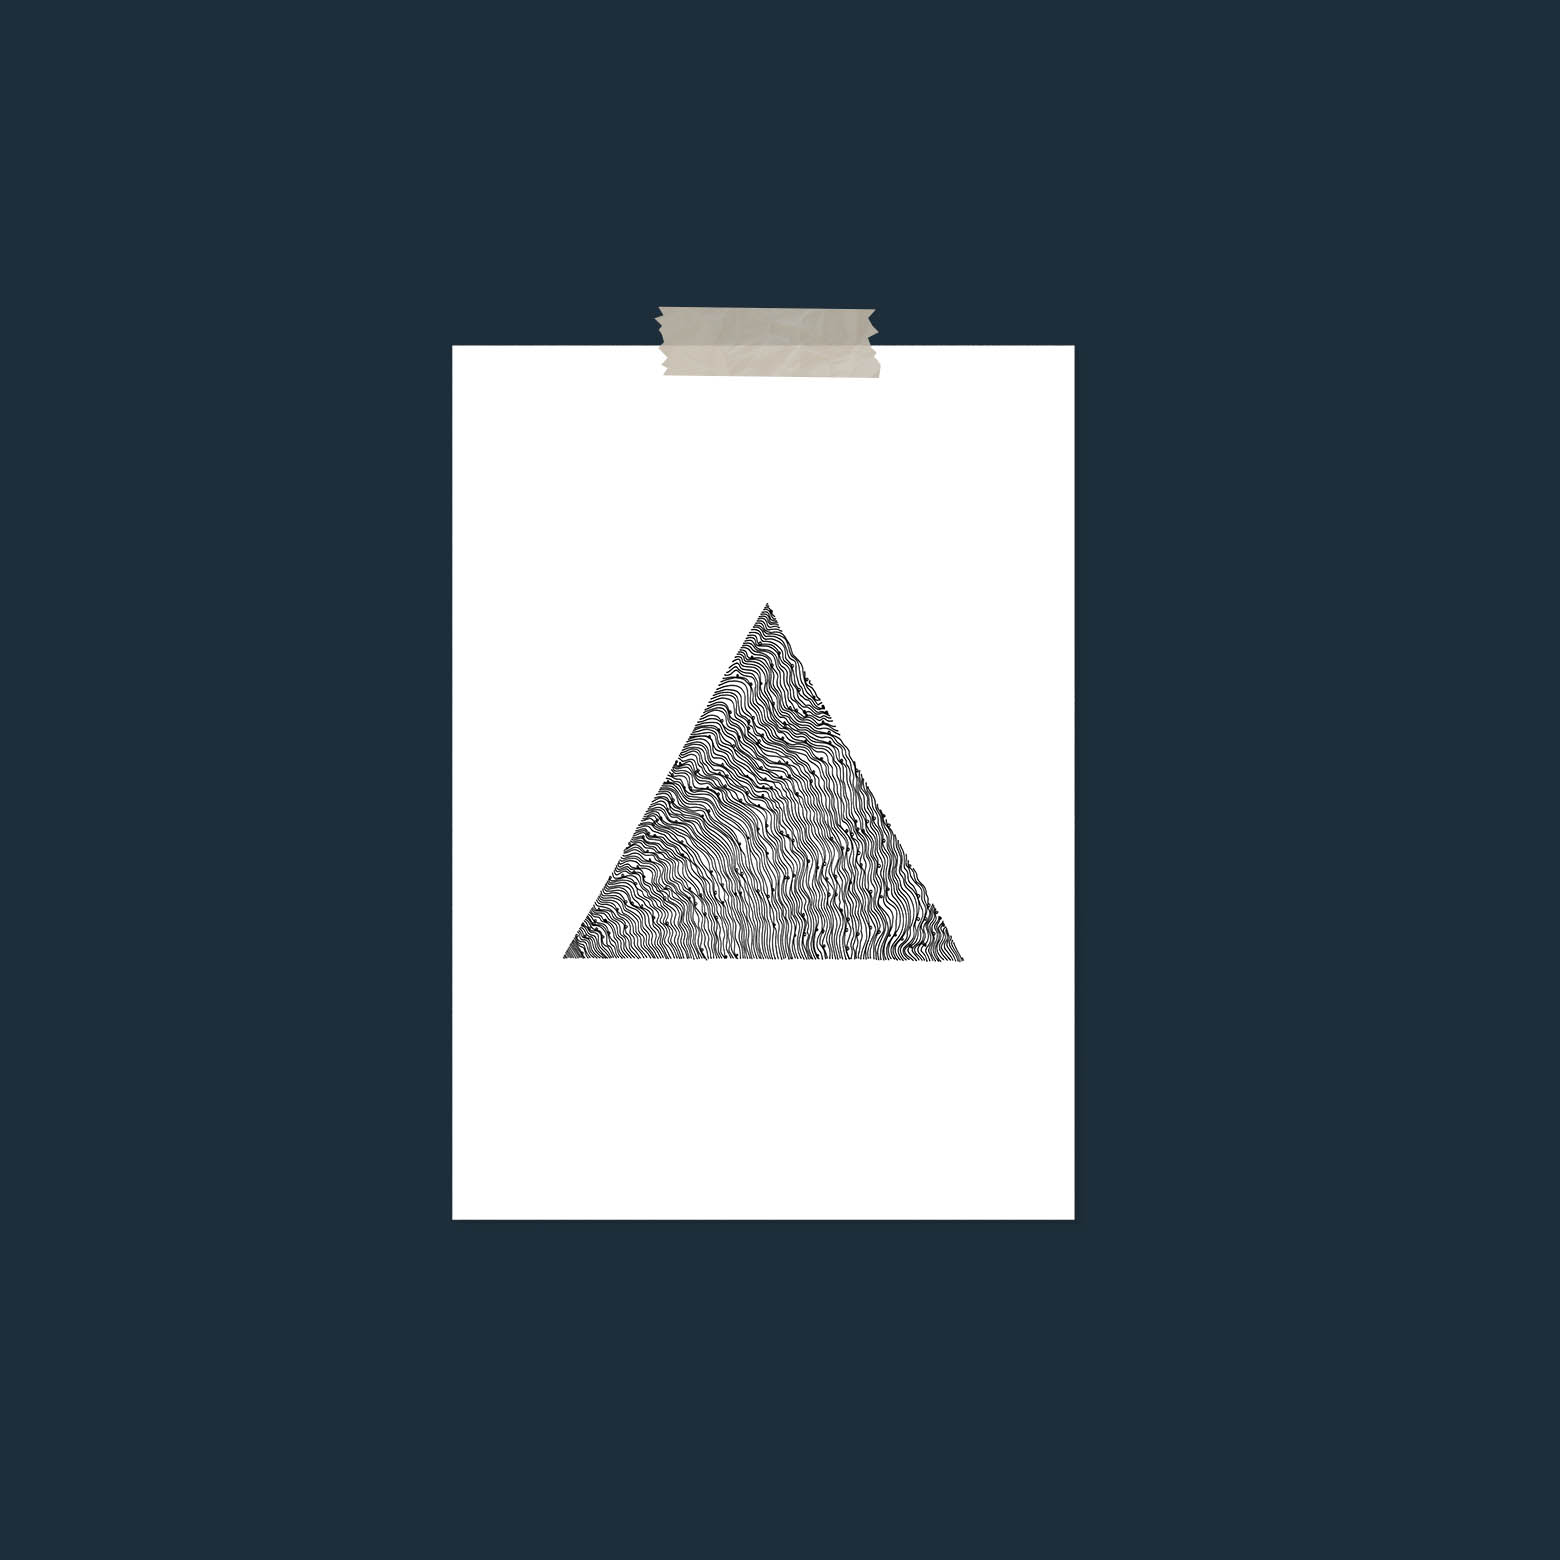 ILLUSTRATED TRIANGLE -